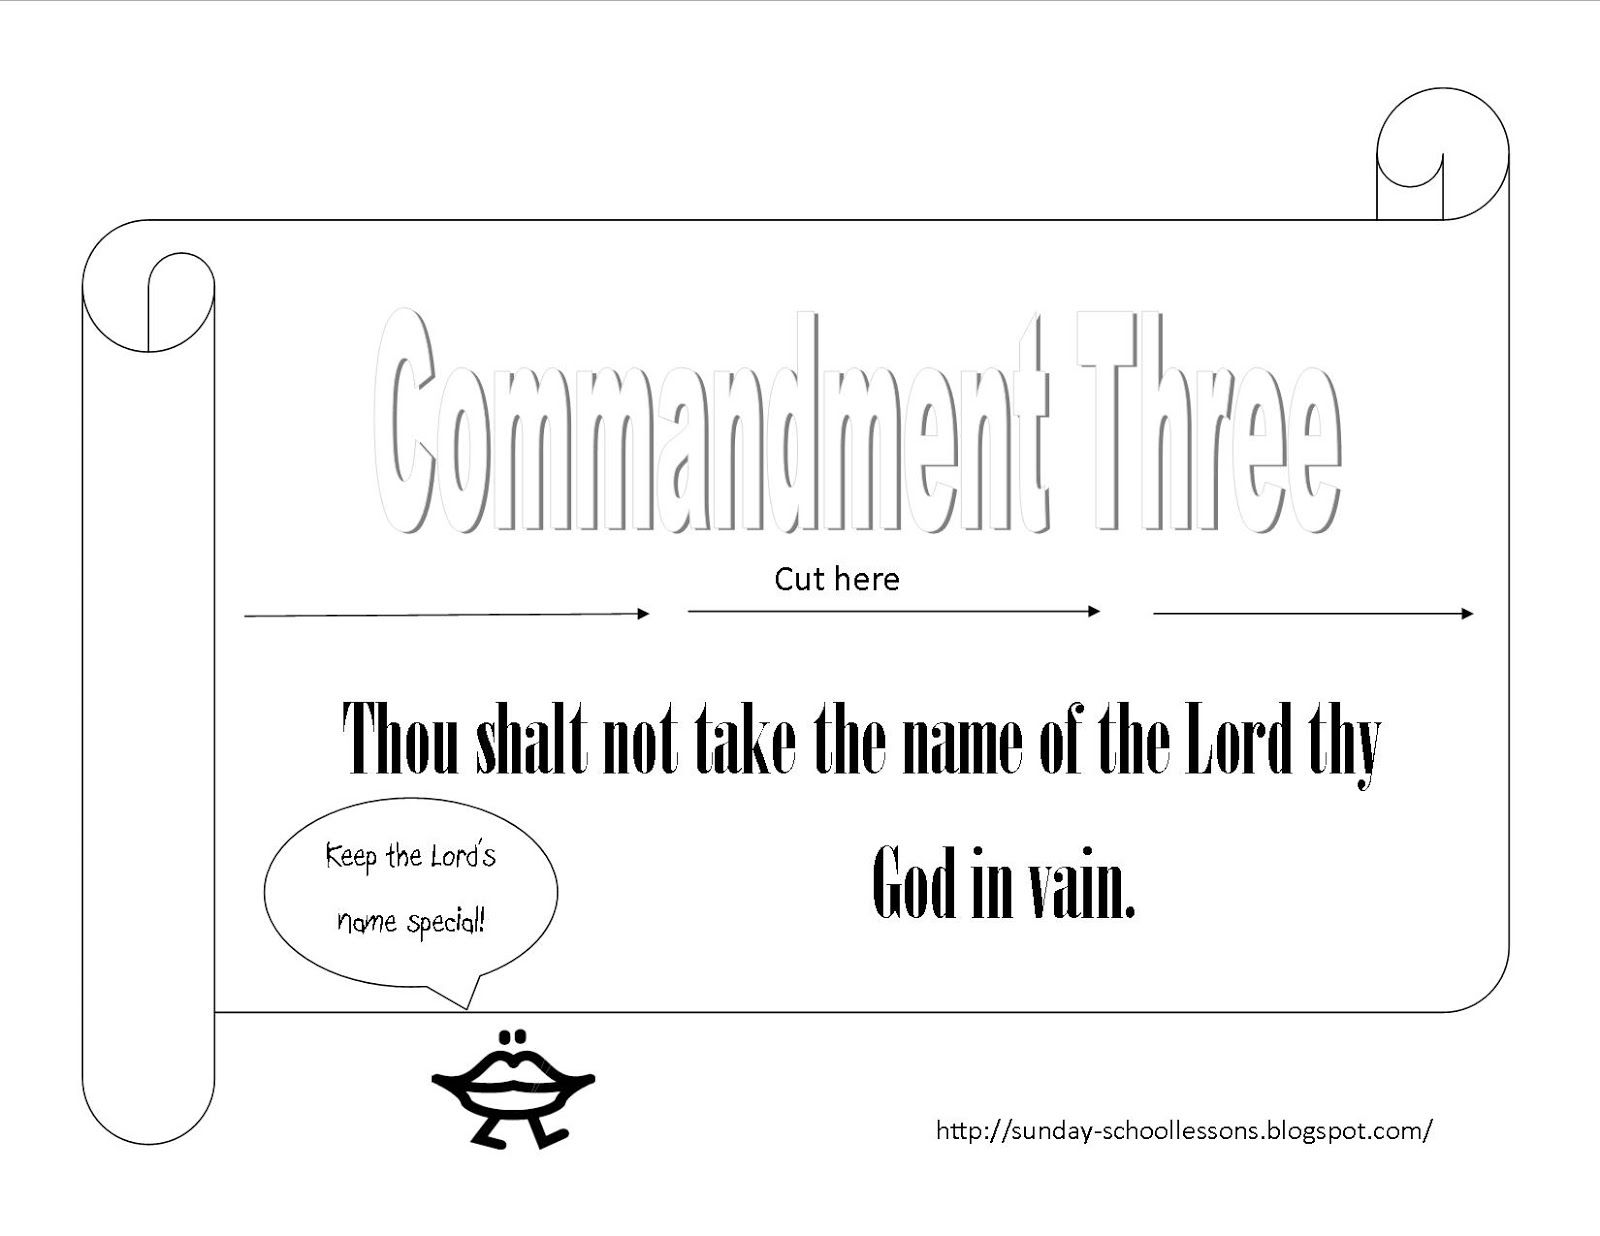 Print The 10 Commandments Coloring Pages For Your Sunday School Class